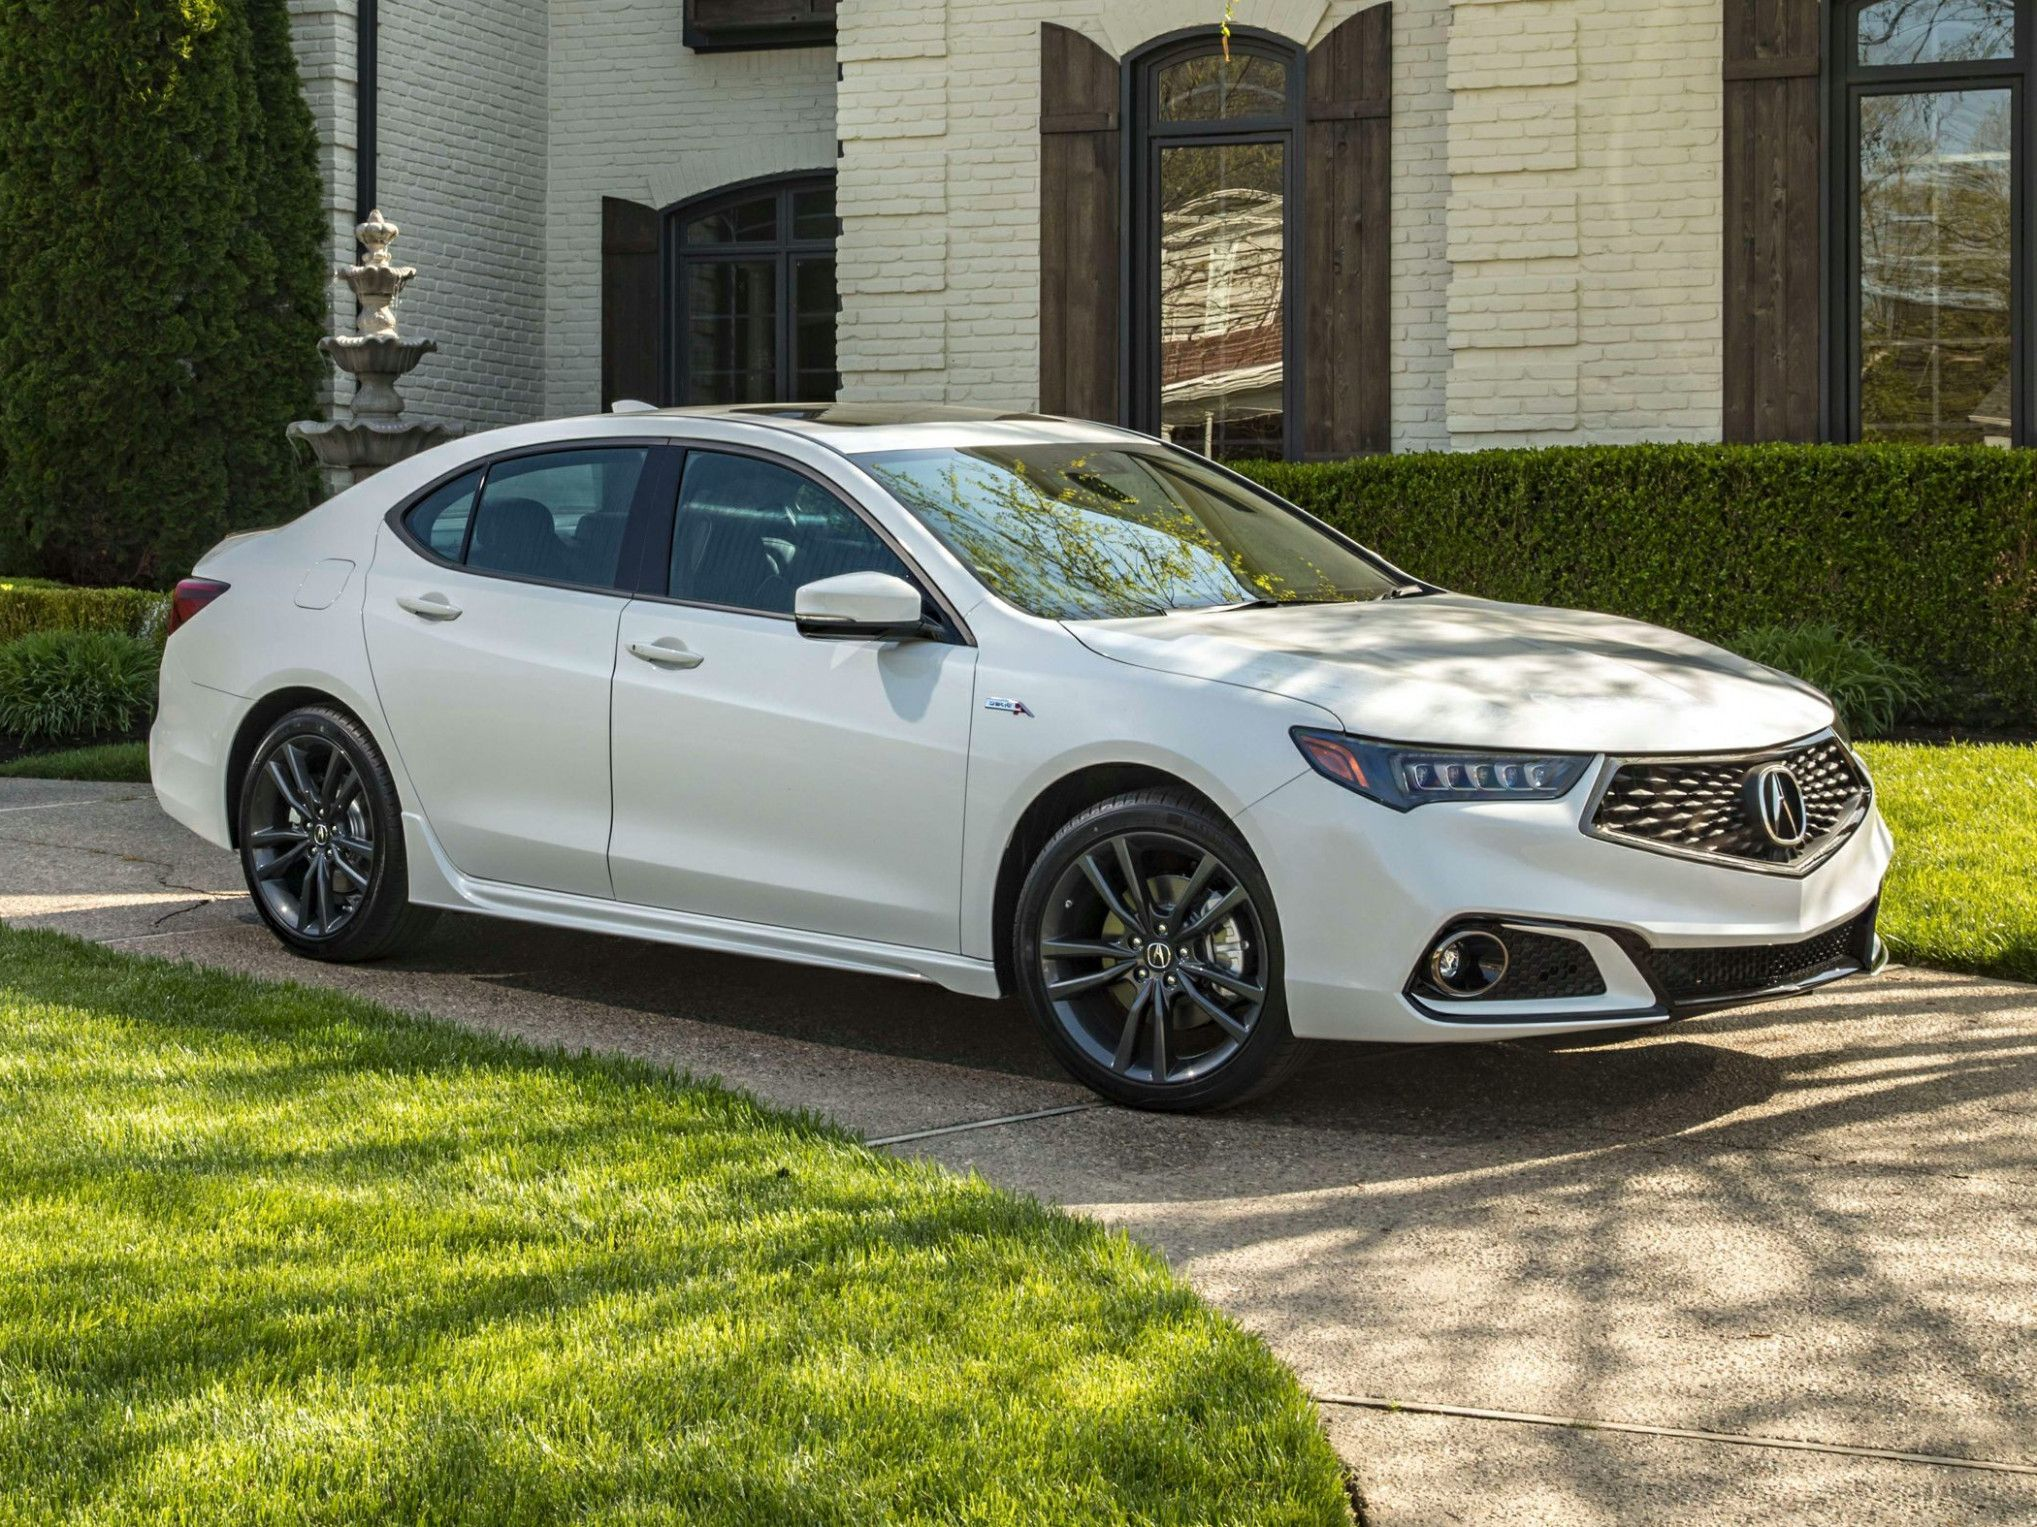 Ten Great Acura Tlx A Spec 2020 Ideas That You Can Share With Your Friends Acura Tlx Acura Sedan Acura